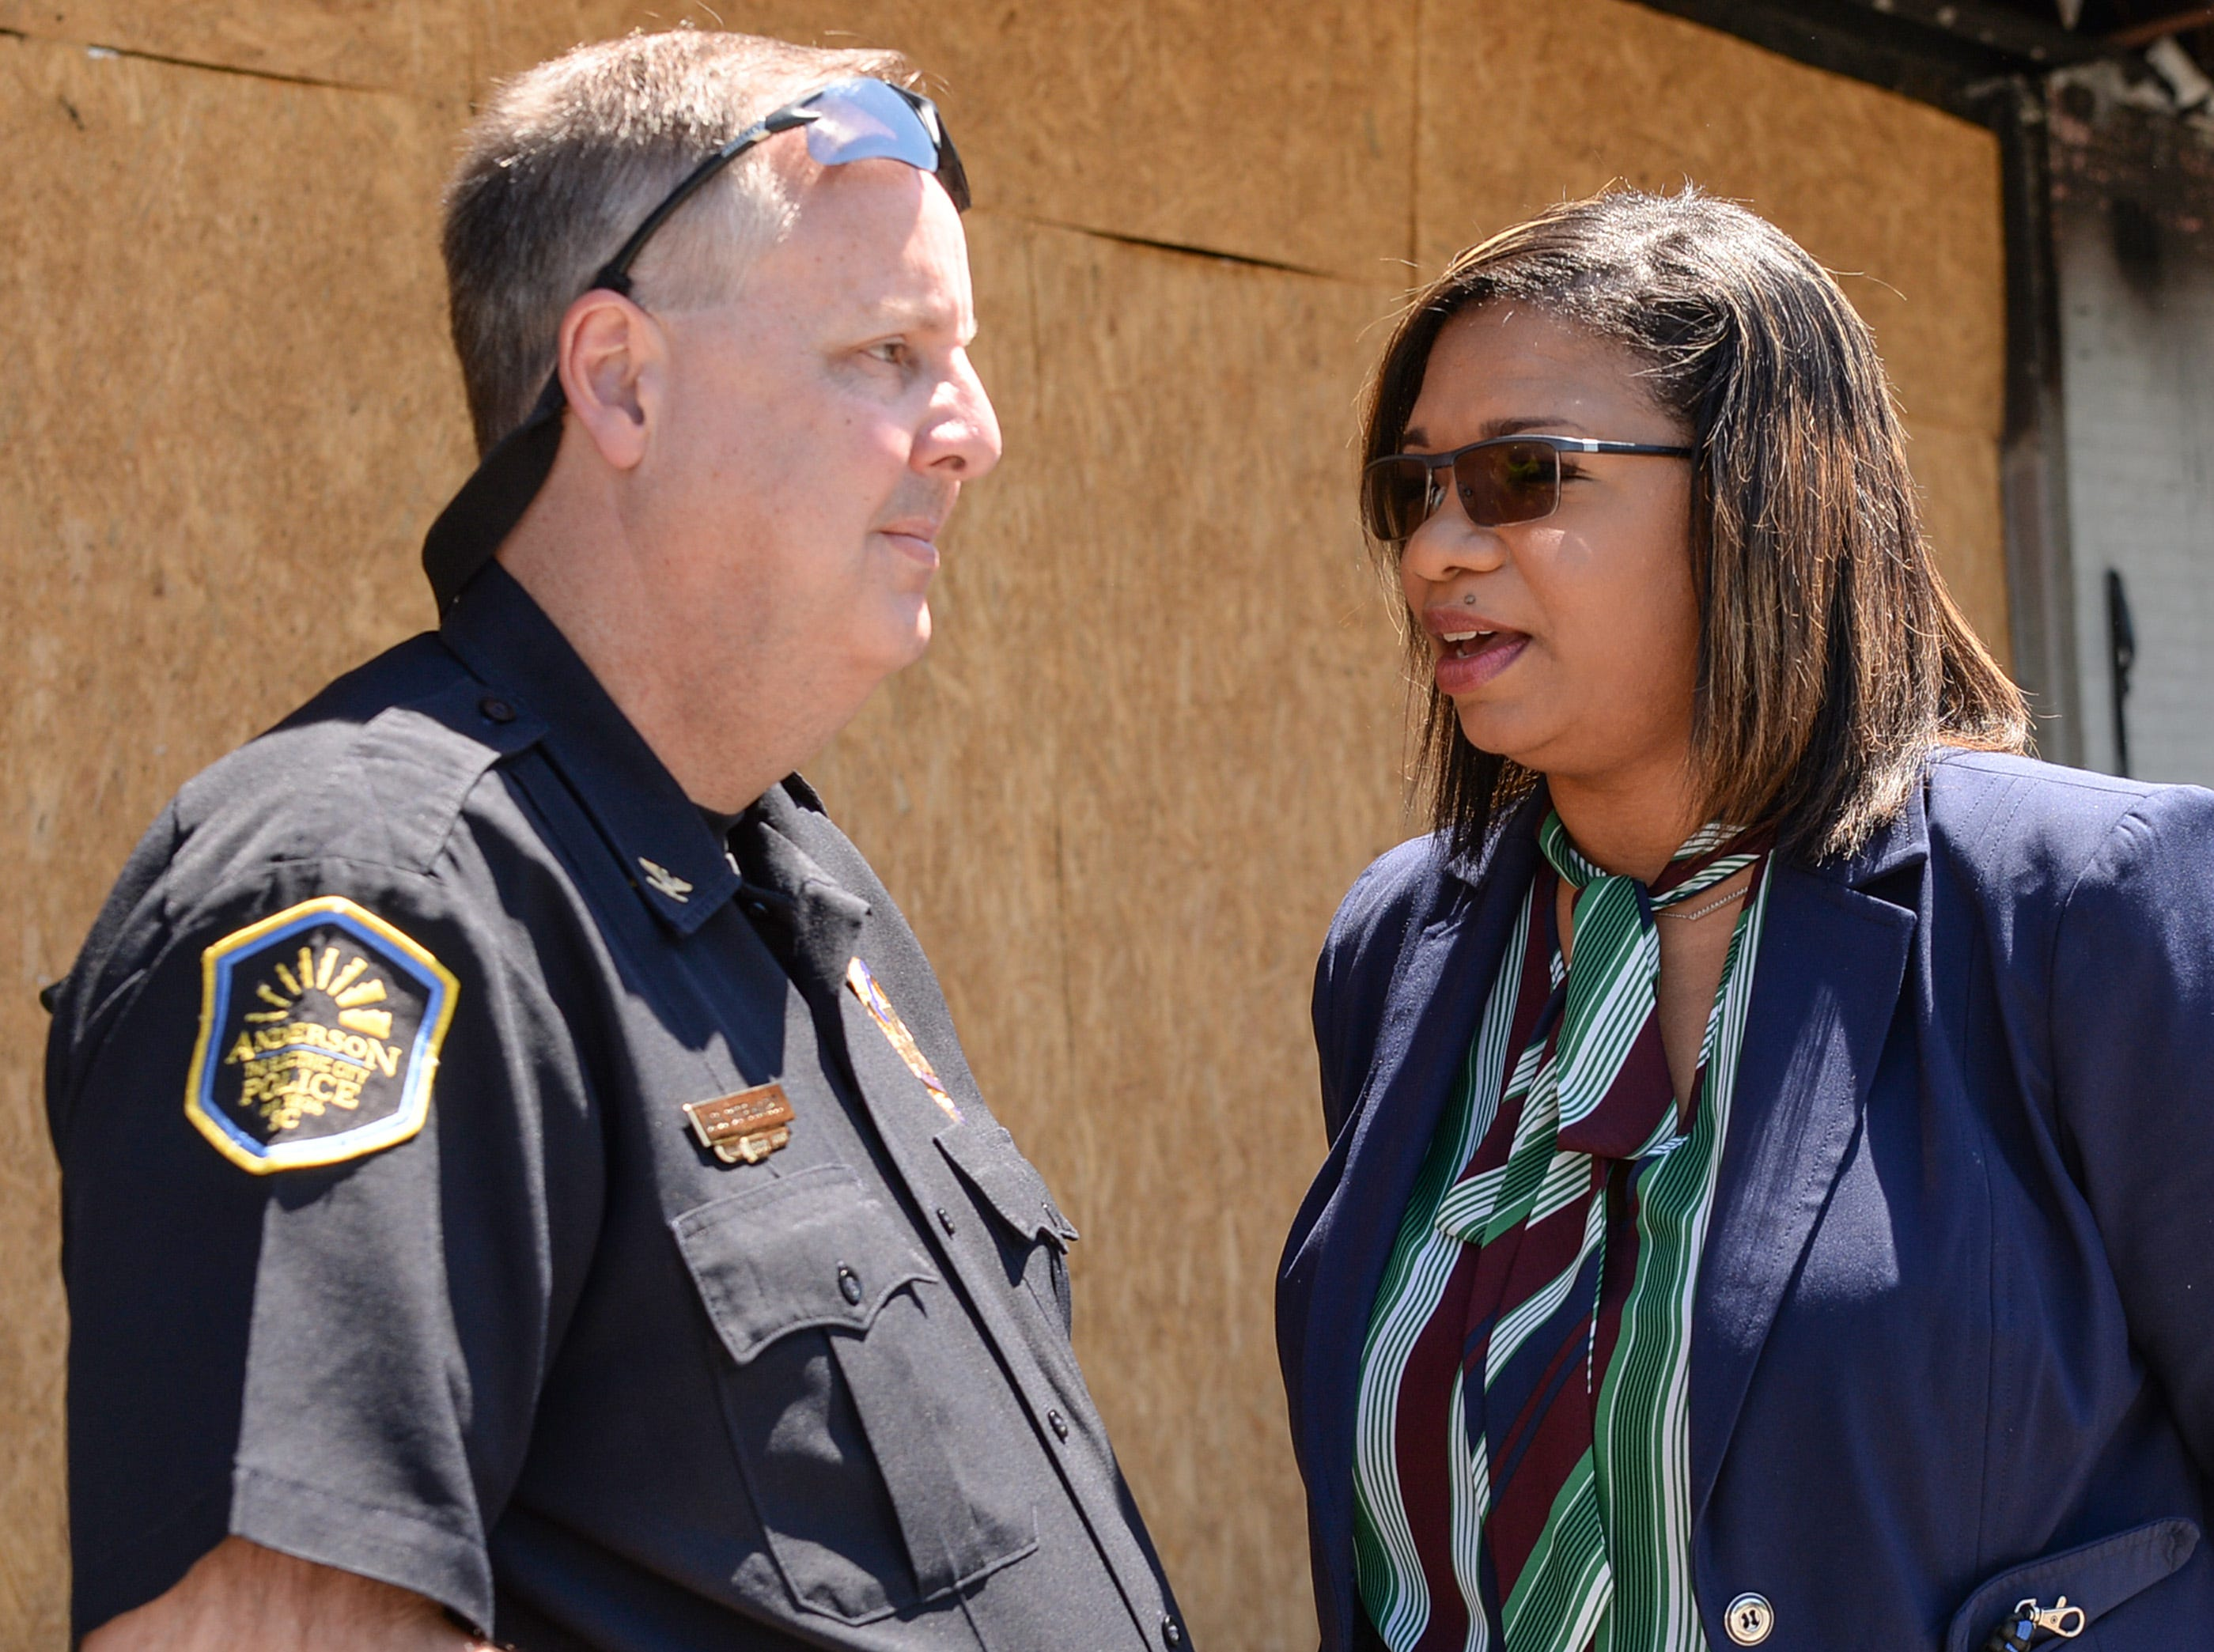 Chief of Police Jim Stewart, left, and Lt. Carla Roberson speak after a press conference concerning a cold case homicide of Randy Smith. Smith died in a drive-by shooting in 2016 and Anderson Area Crime Stoppers held the press conference asking for the public to come forward with any tips.